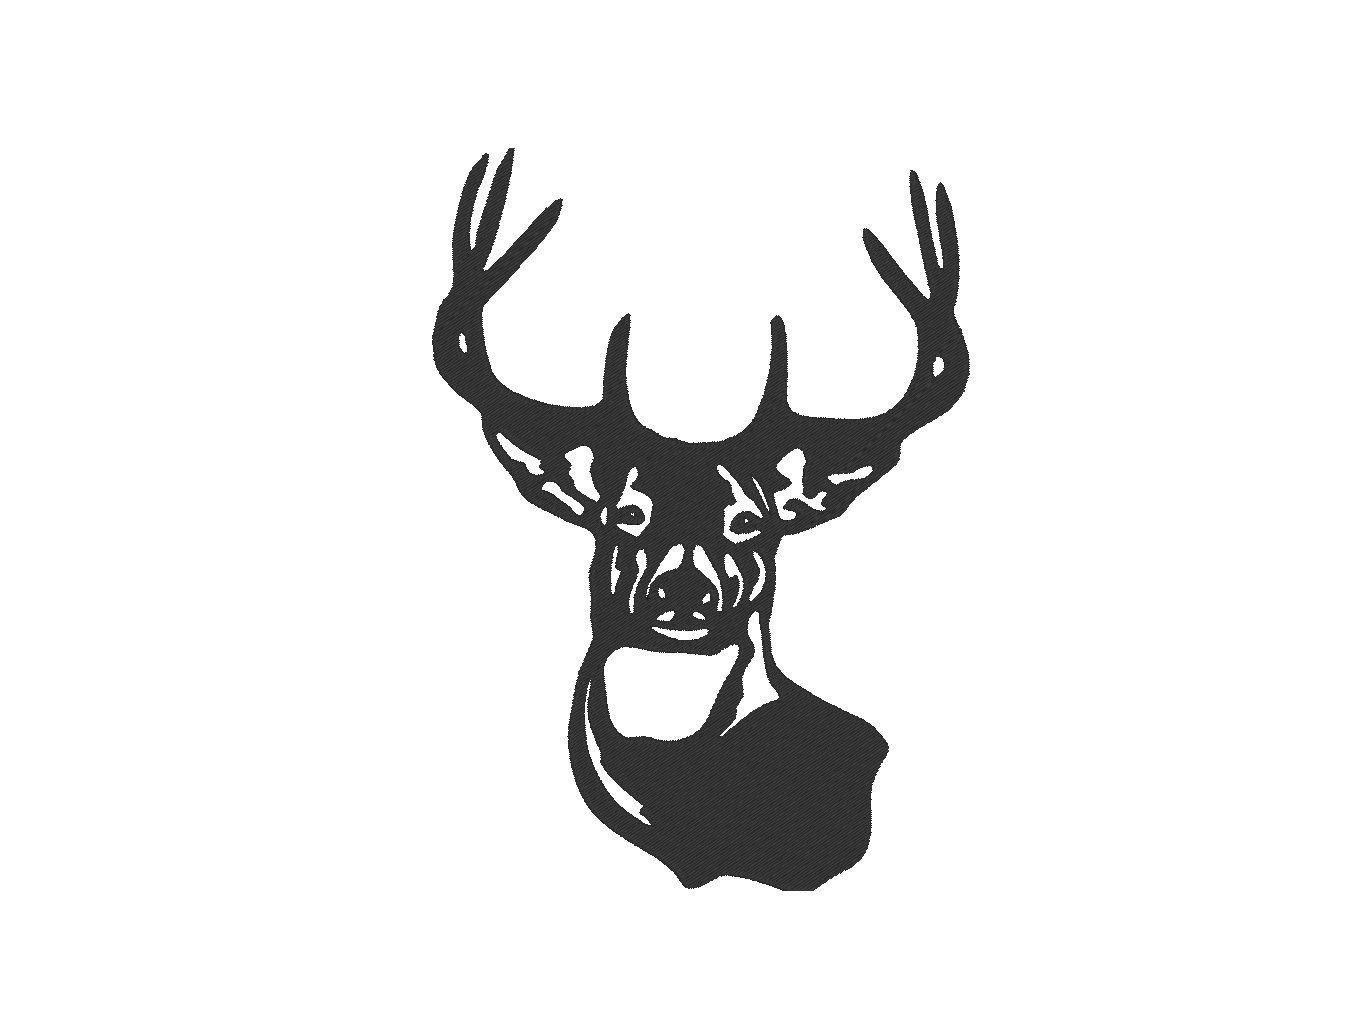 Deer Embroidery Machine Design by OCDEmbroidery on Etsy